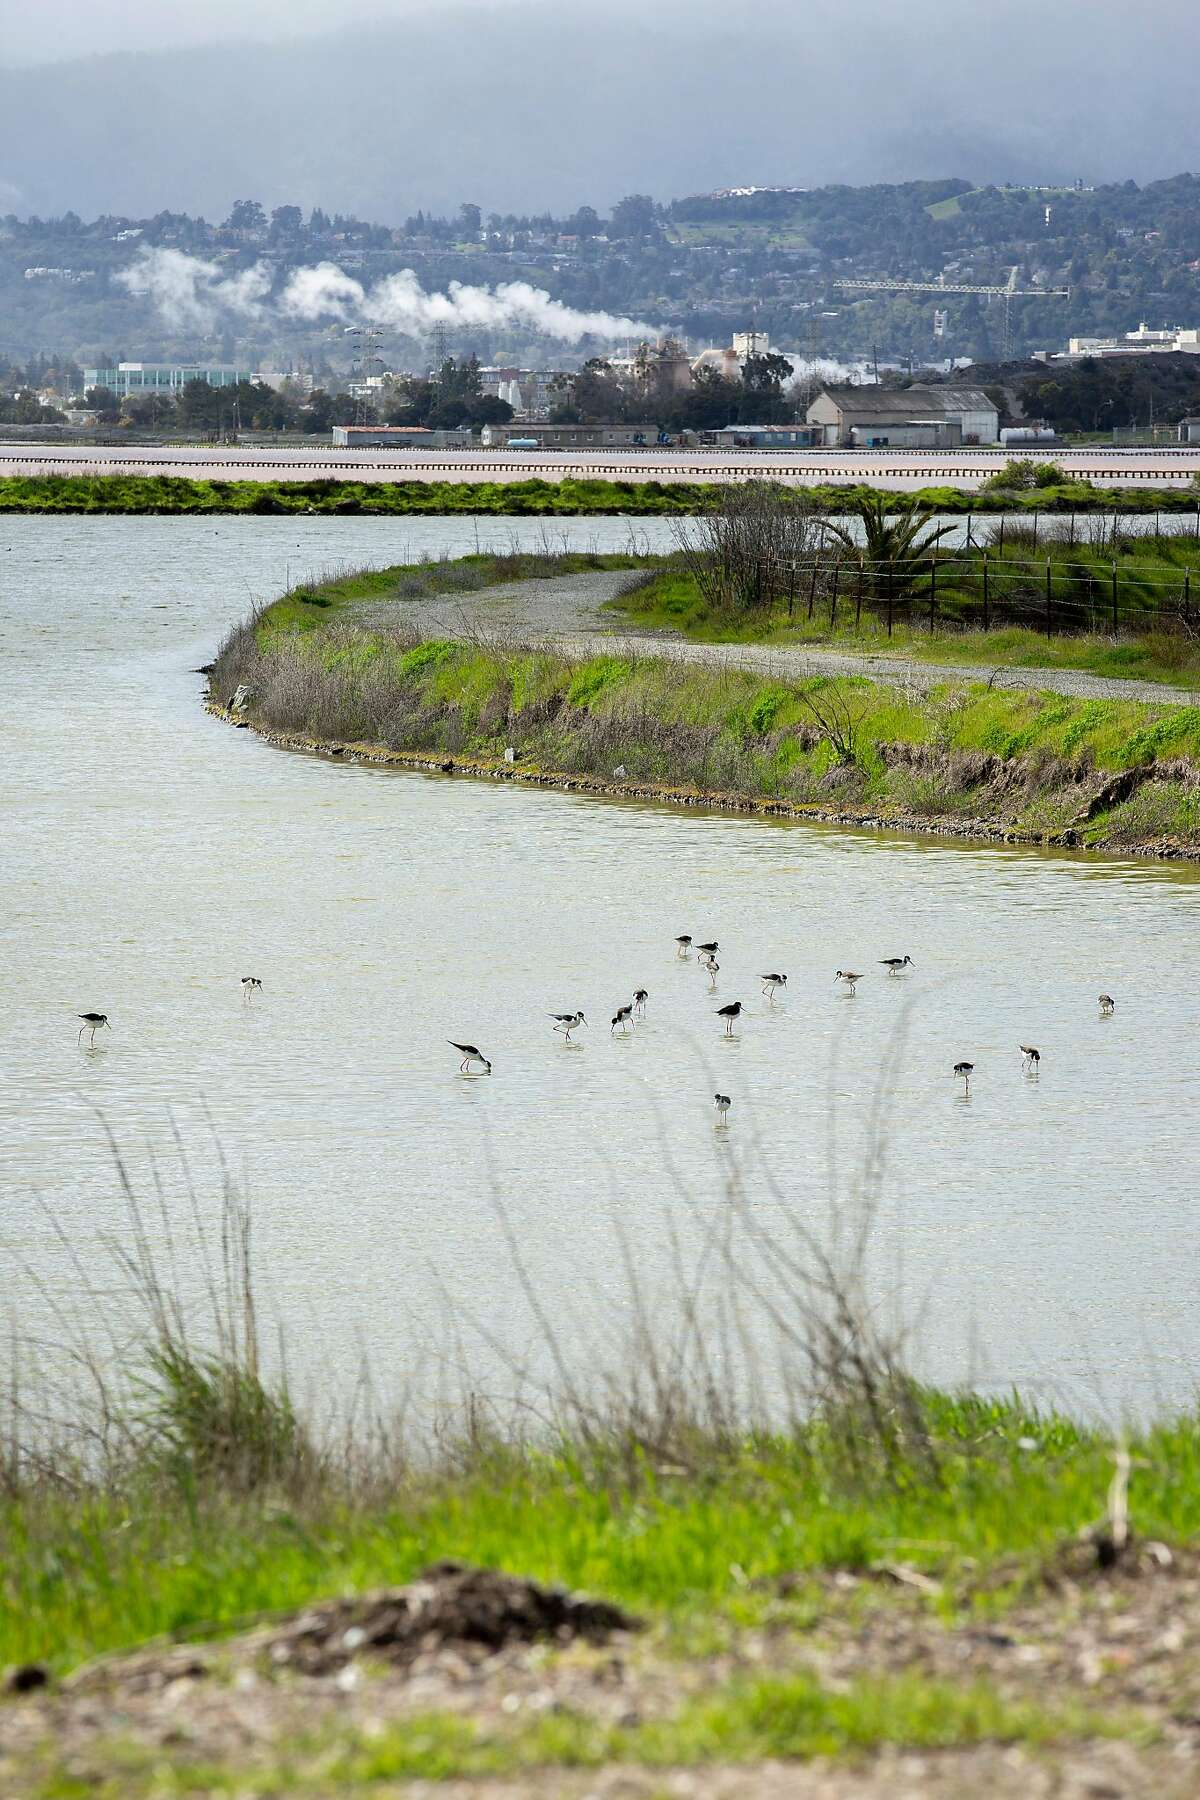 Birds at the Cargill property near the salt ponds on Tuesday, March 12, 2019, in Redwood City, Calif.